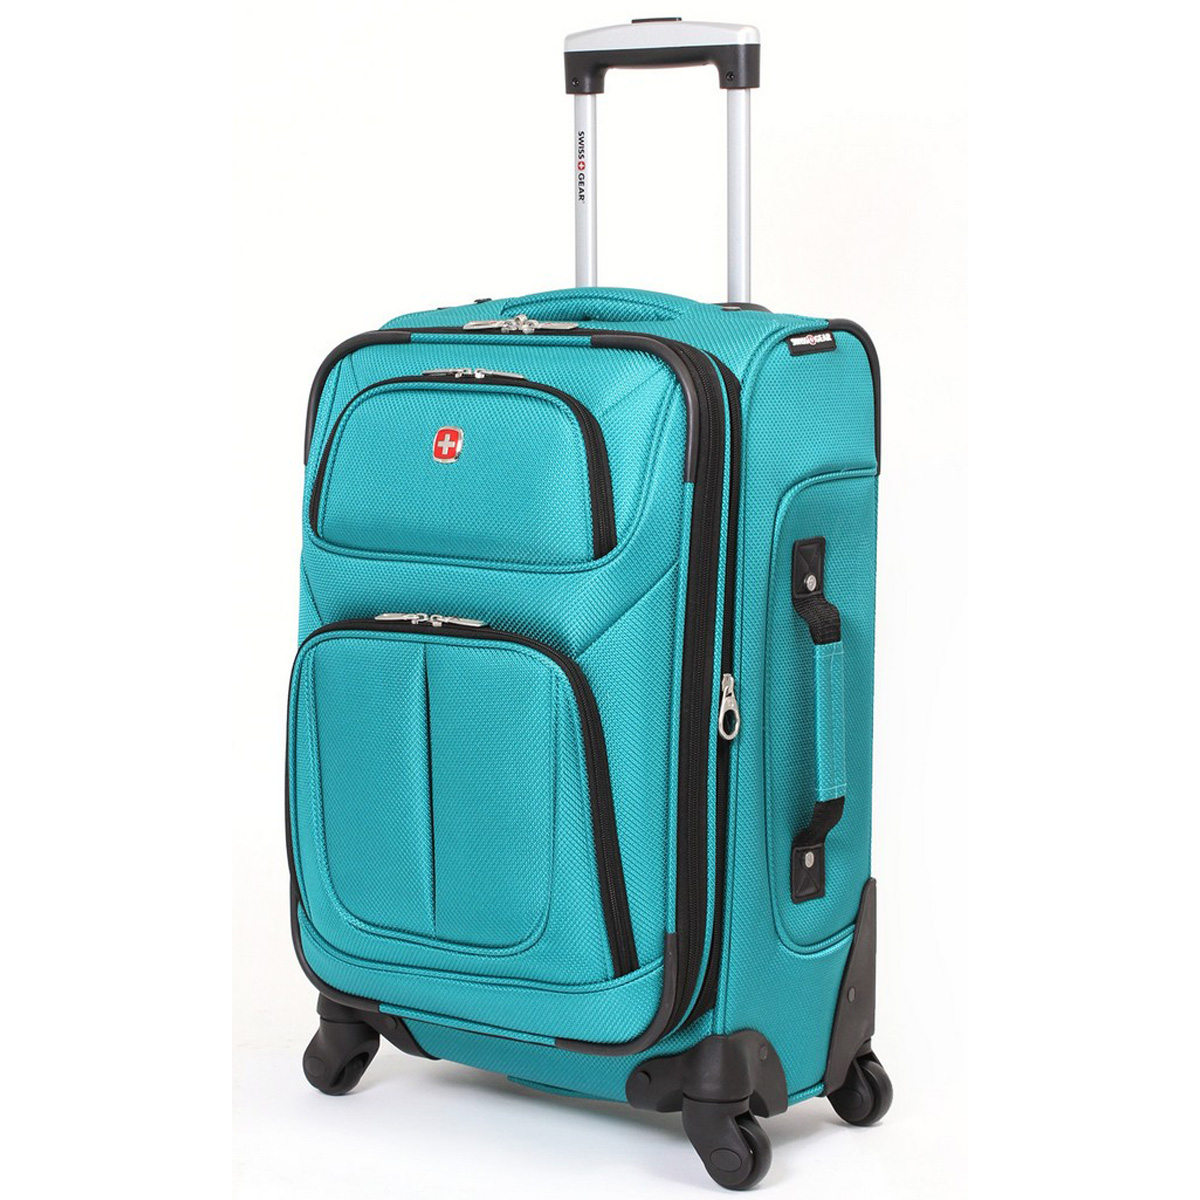 Swissgear Sa6283 21 Inch Carry On Expandable Spinner Suitcase Luggage Ebay